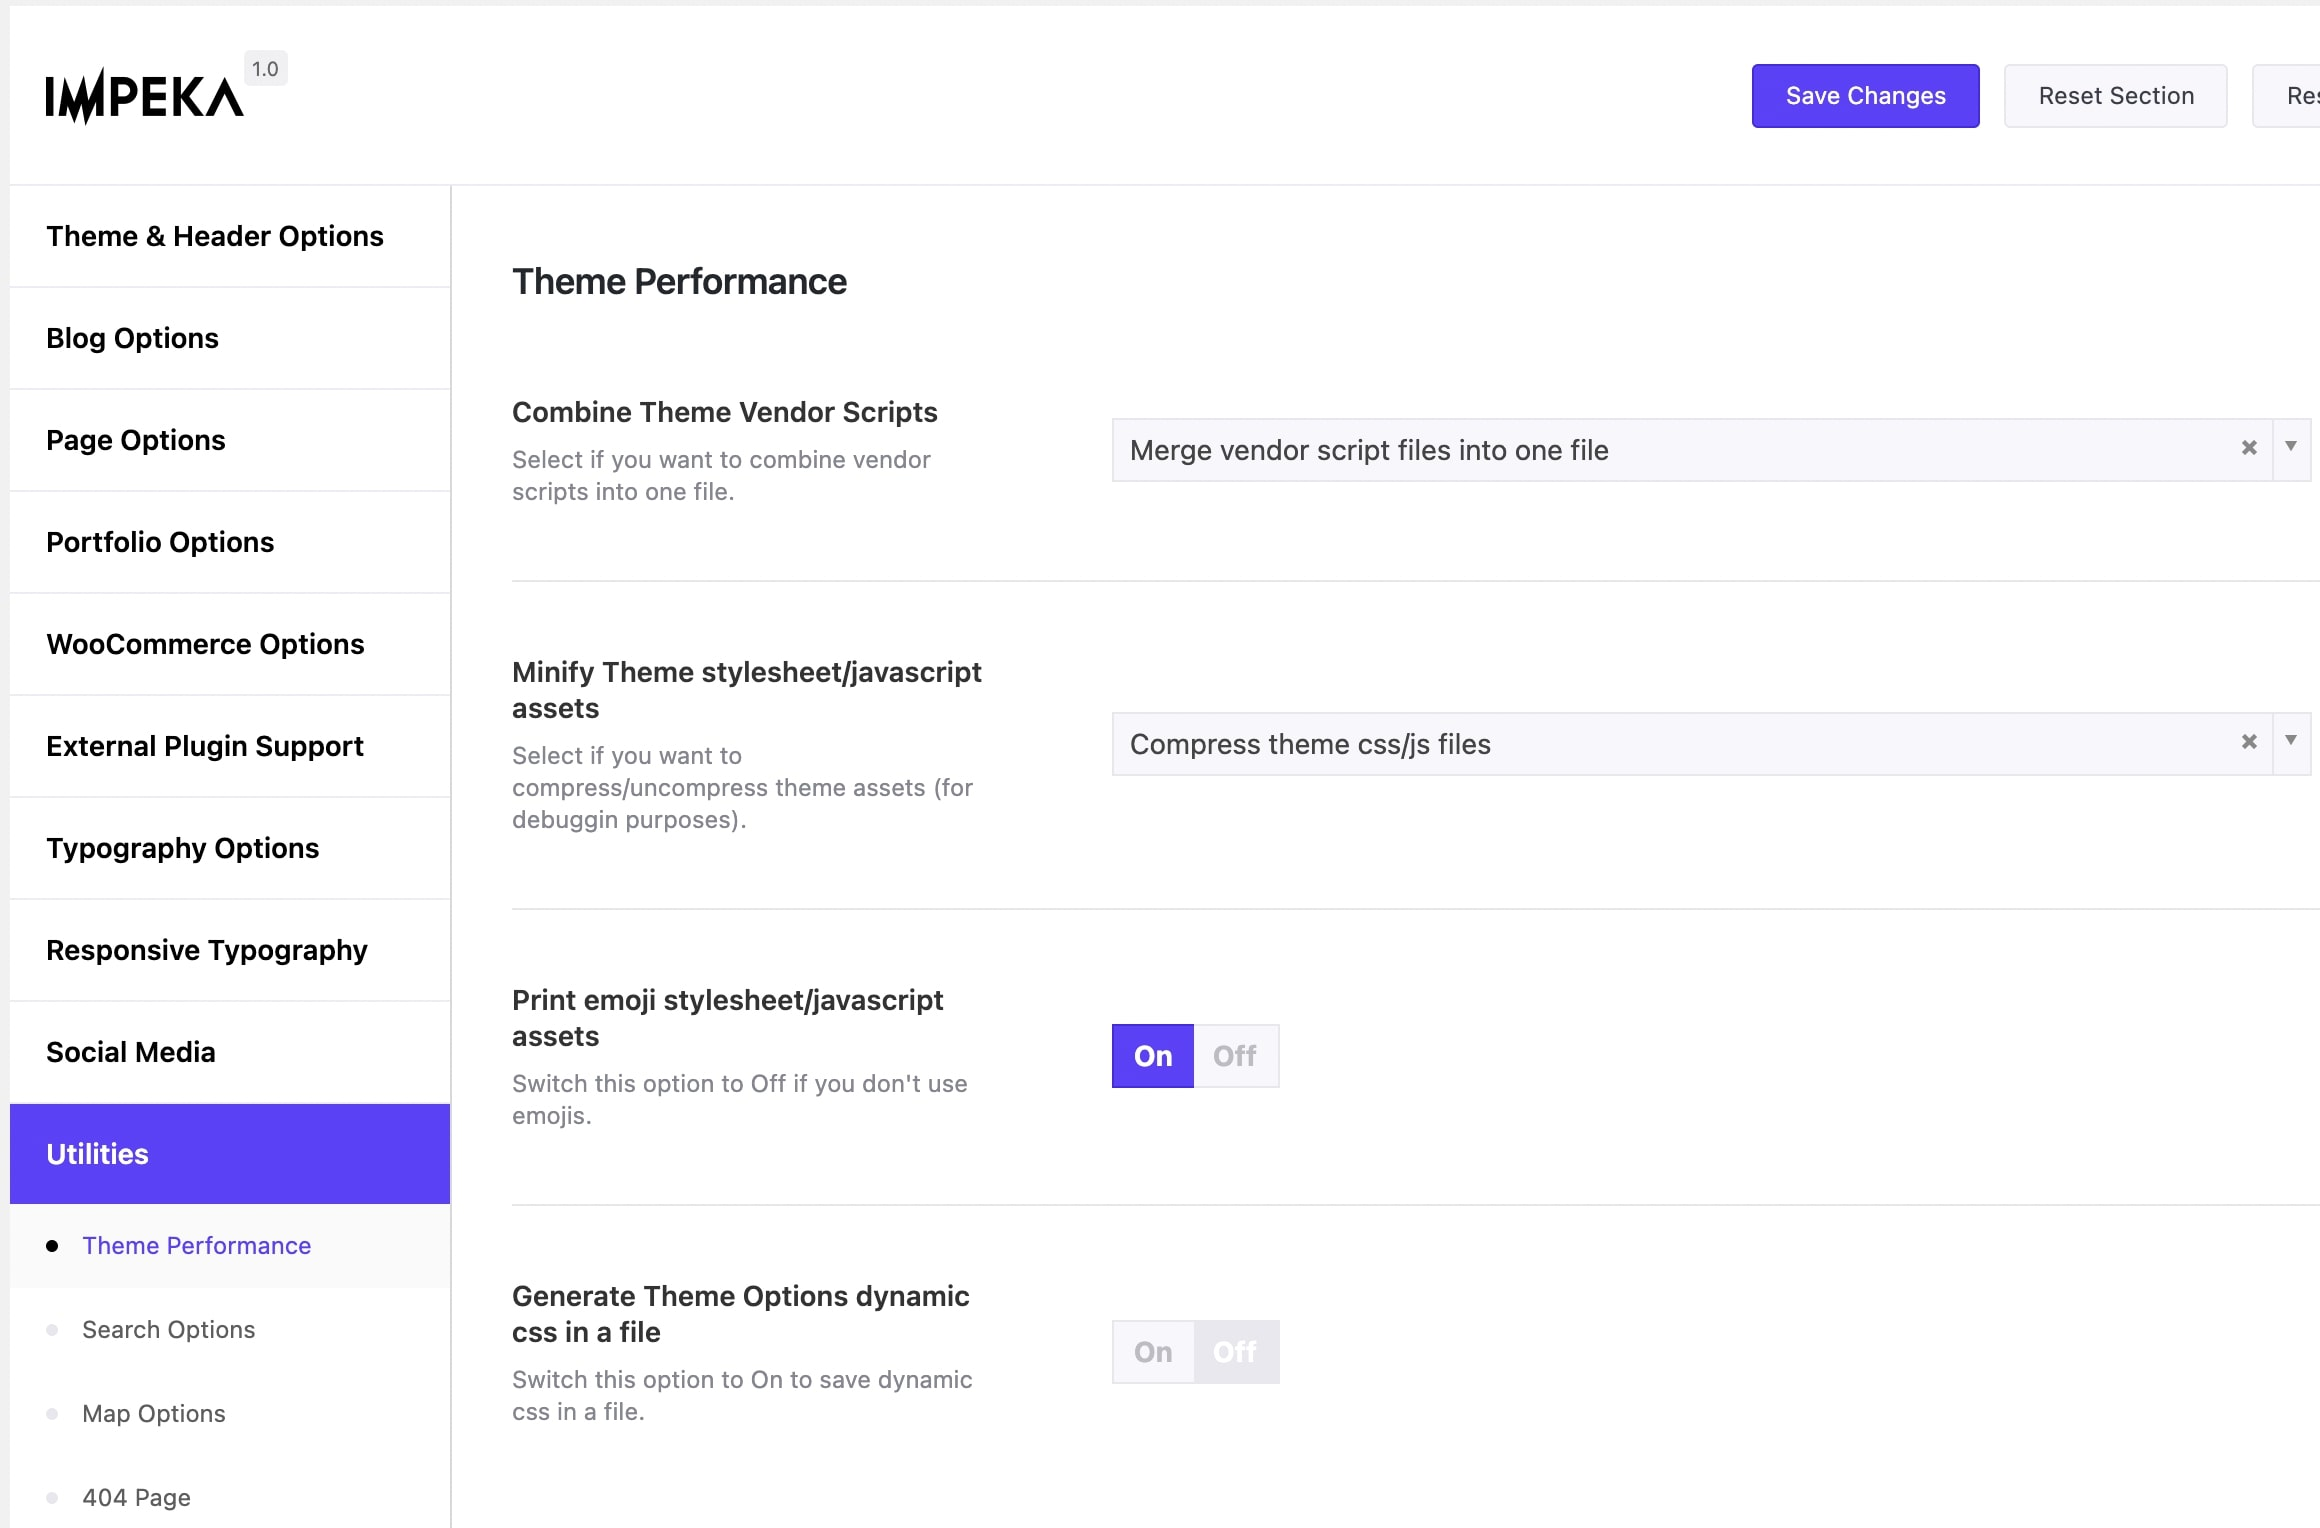 Theme Performance options in Impeka